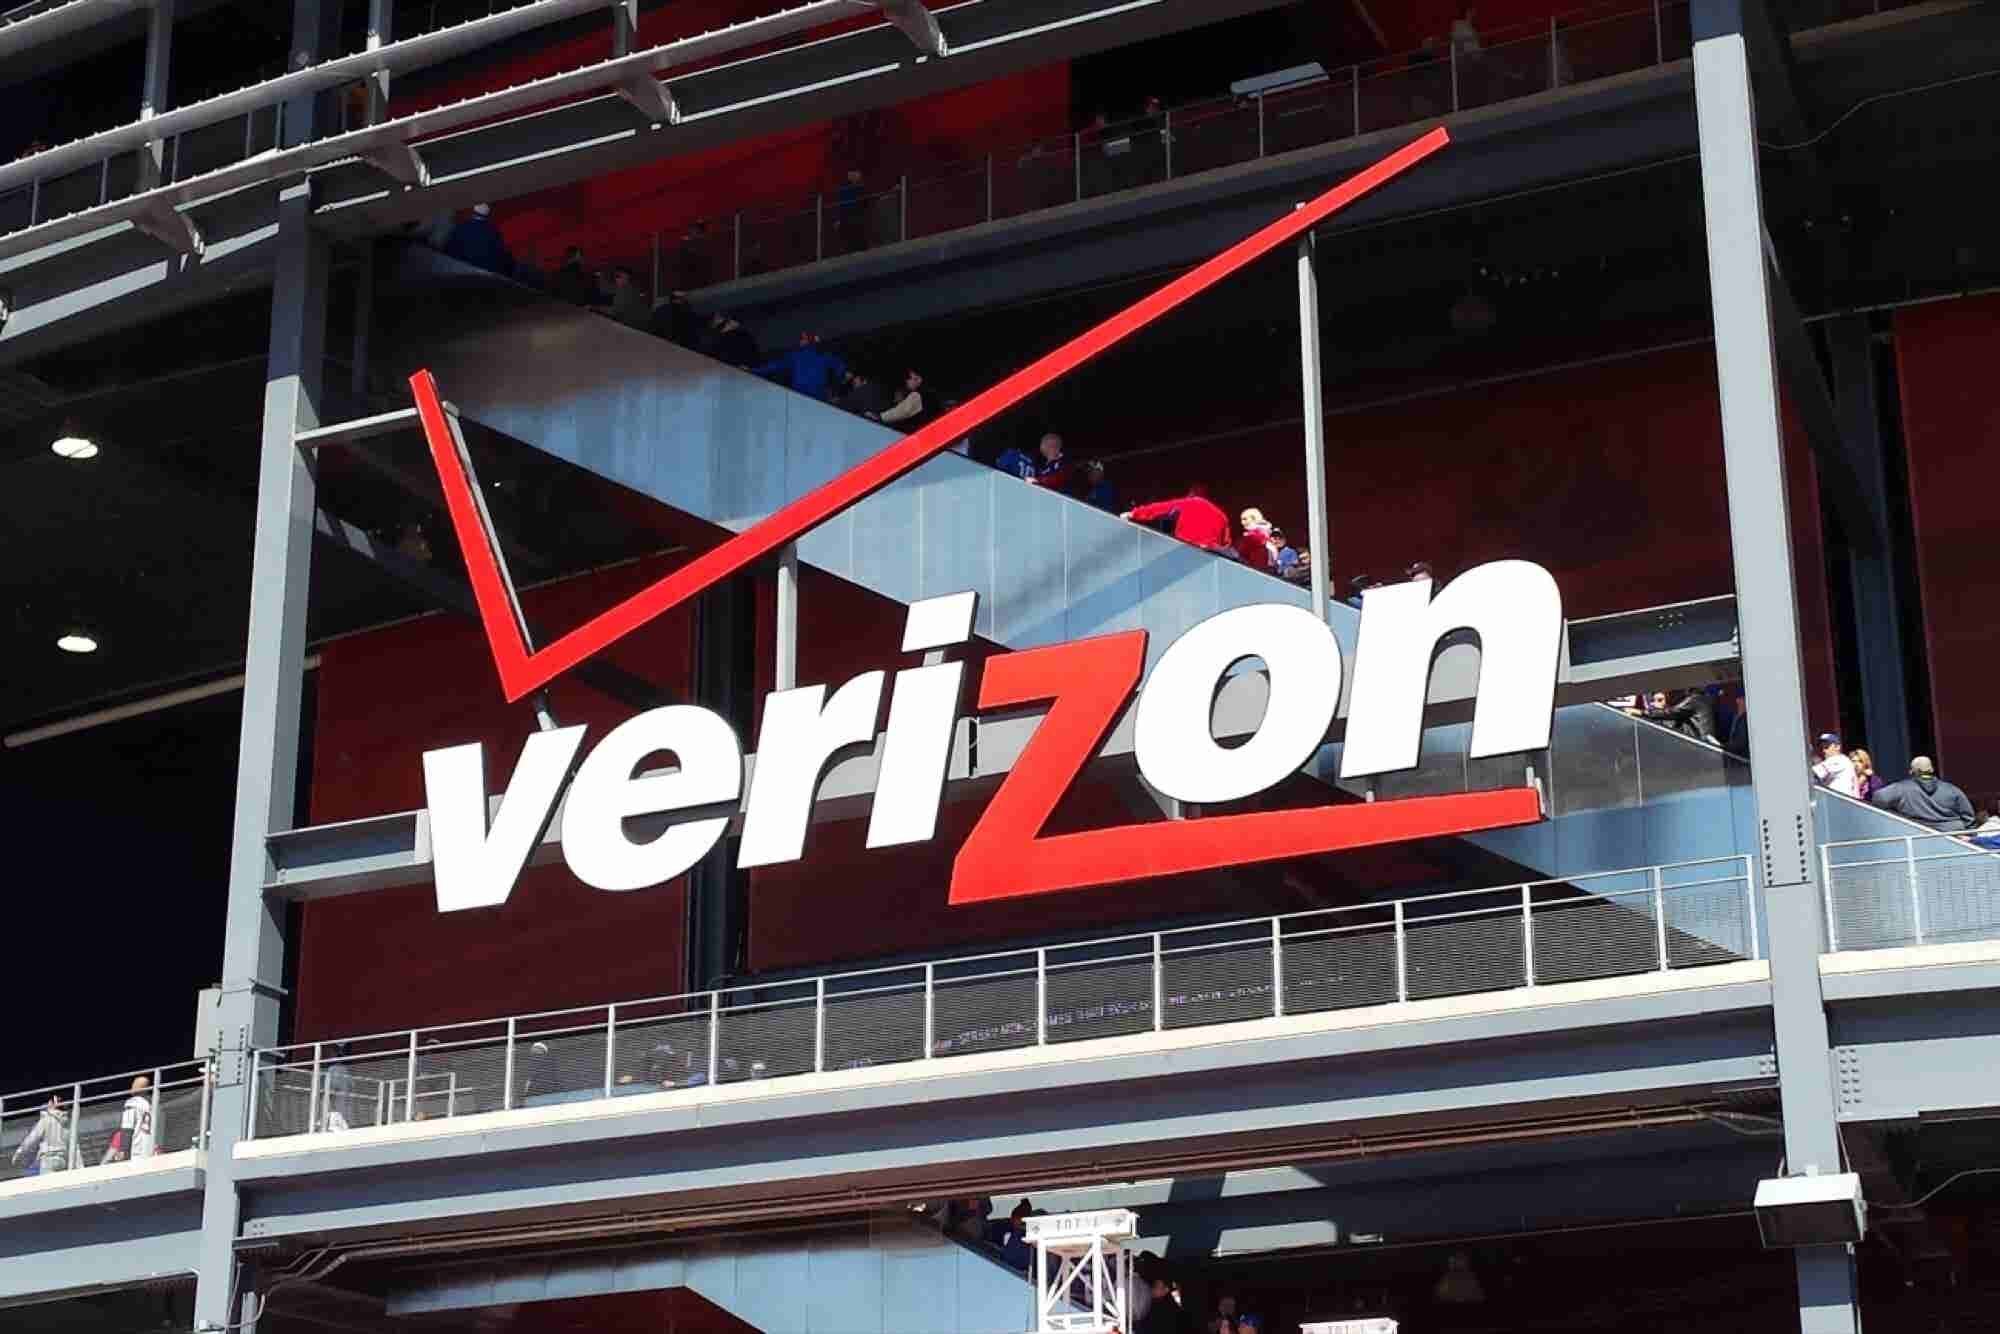 No Strike for Now as Verizon, Unions Continue to Negotiate